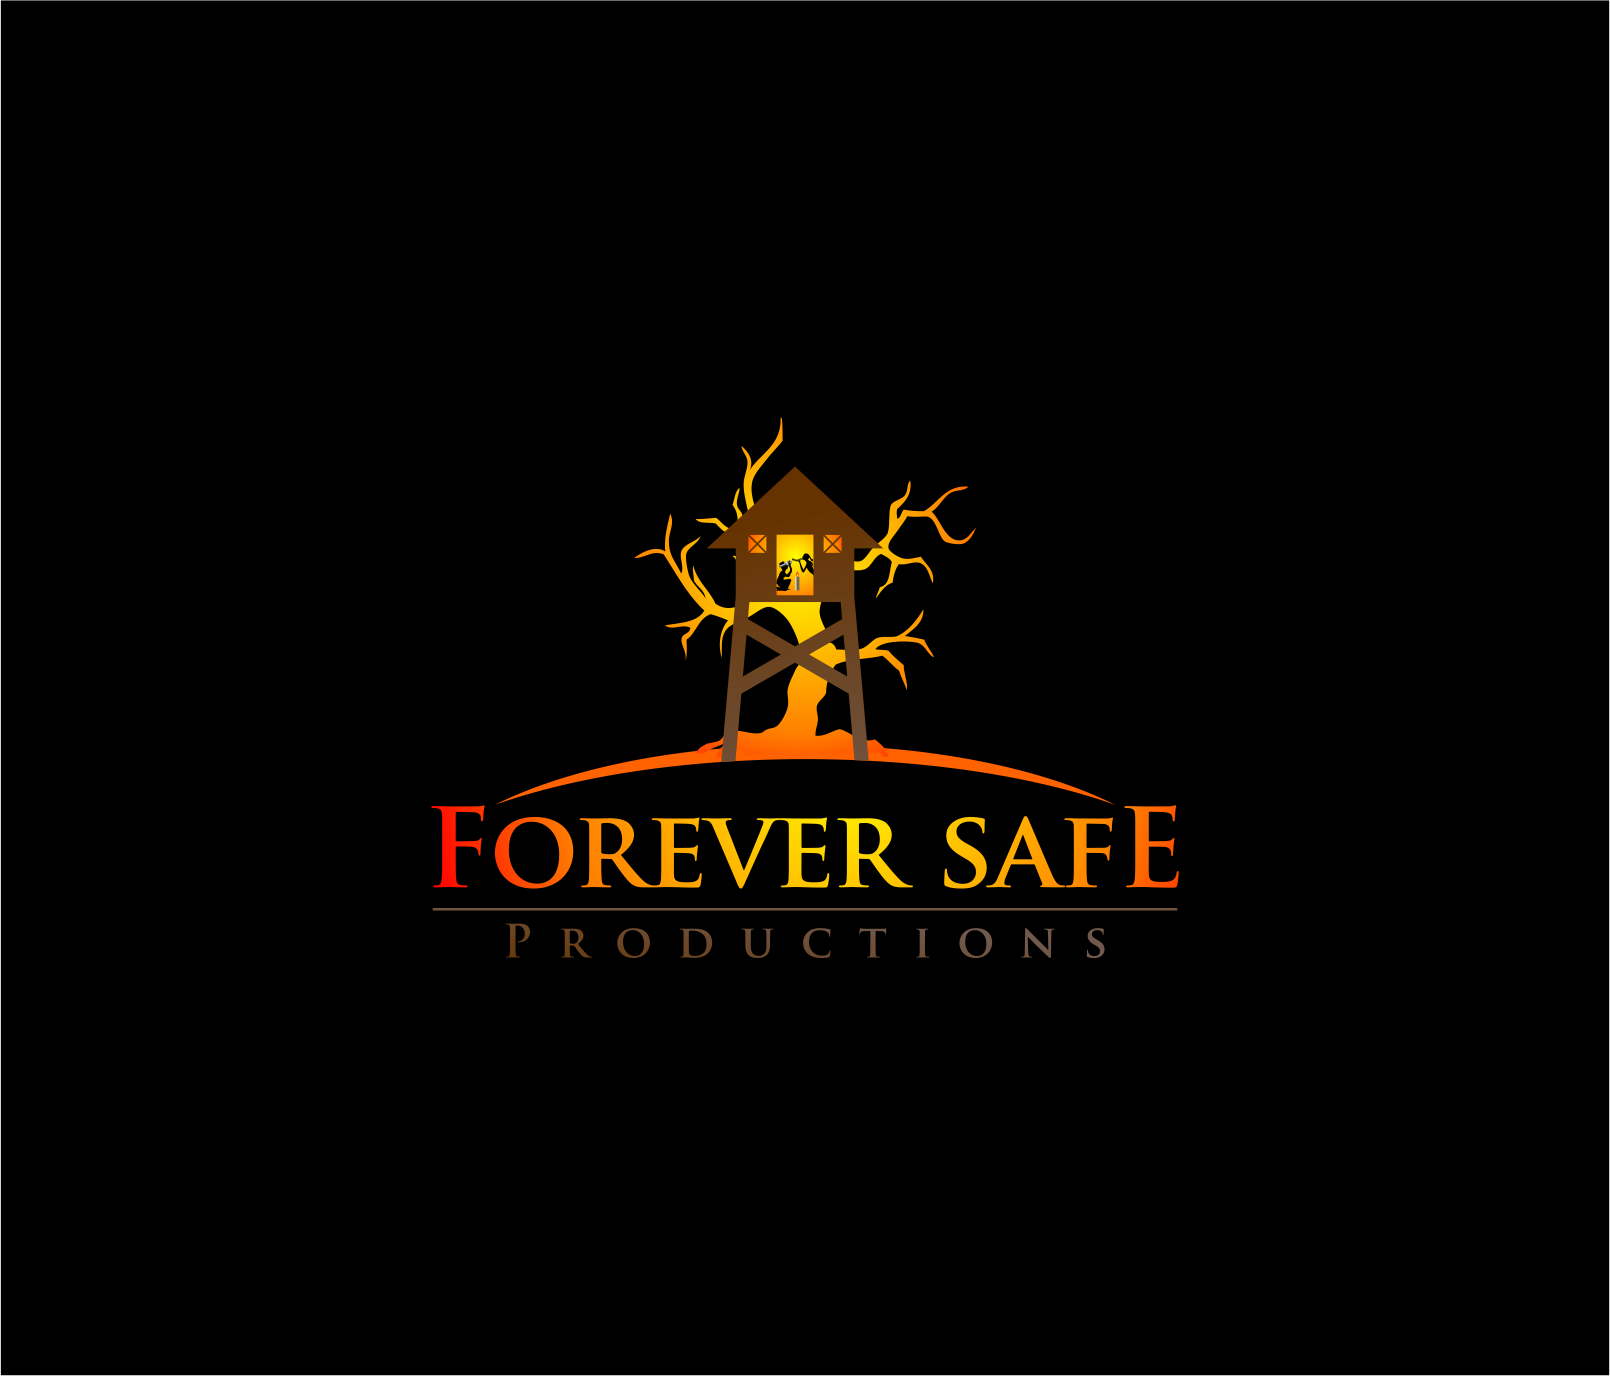 Logo Design by haidu - Entry No. 46 in the Logo Design Contest Inspiring Logo Design for Forever Safe Productions.